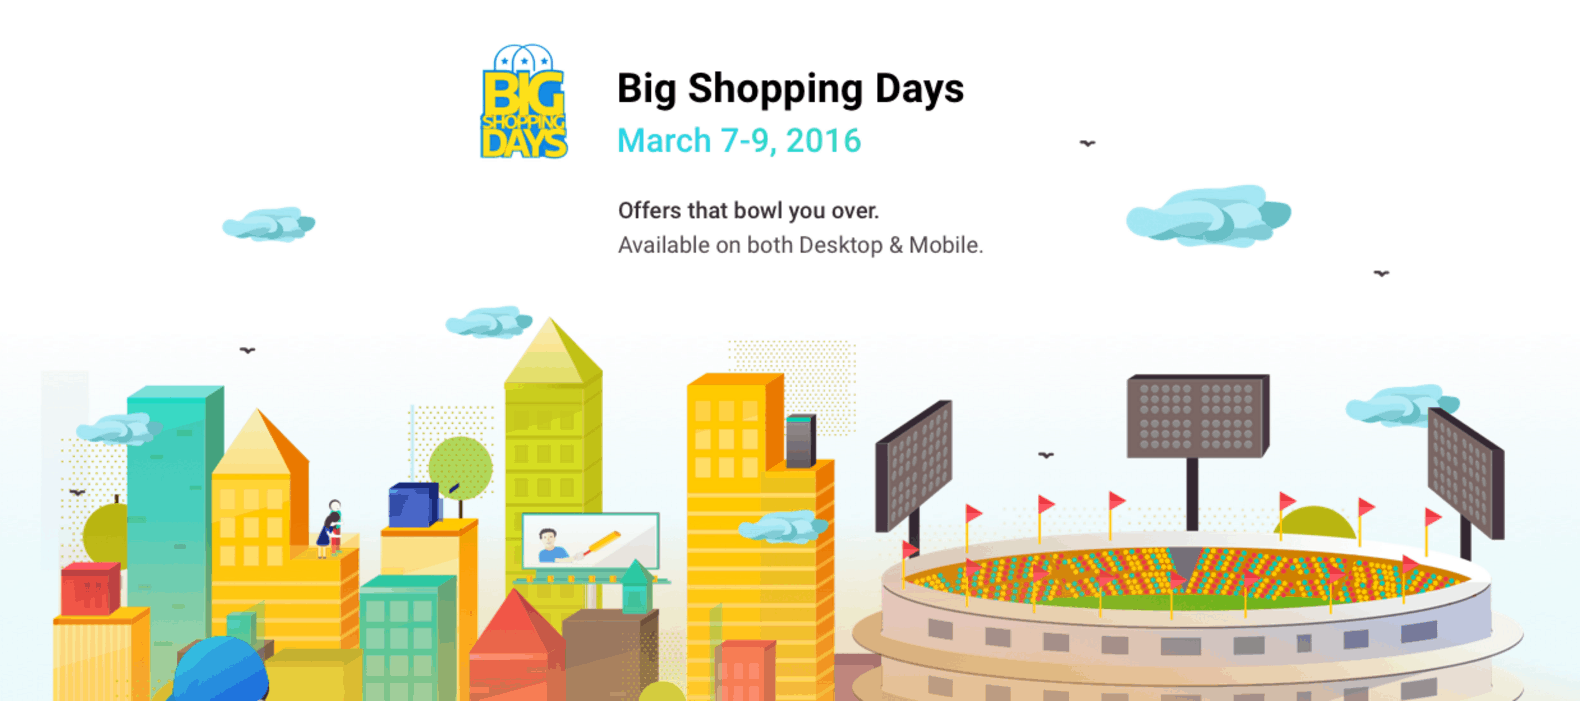 Big Shopping Days Flipkart_1